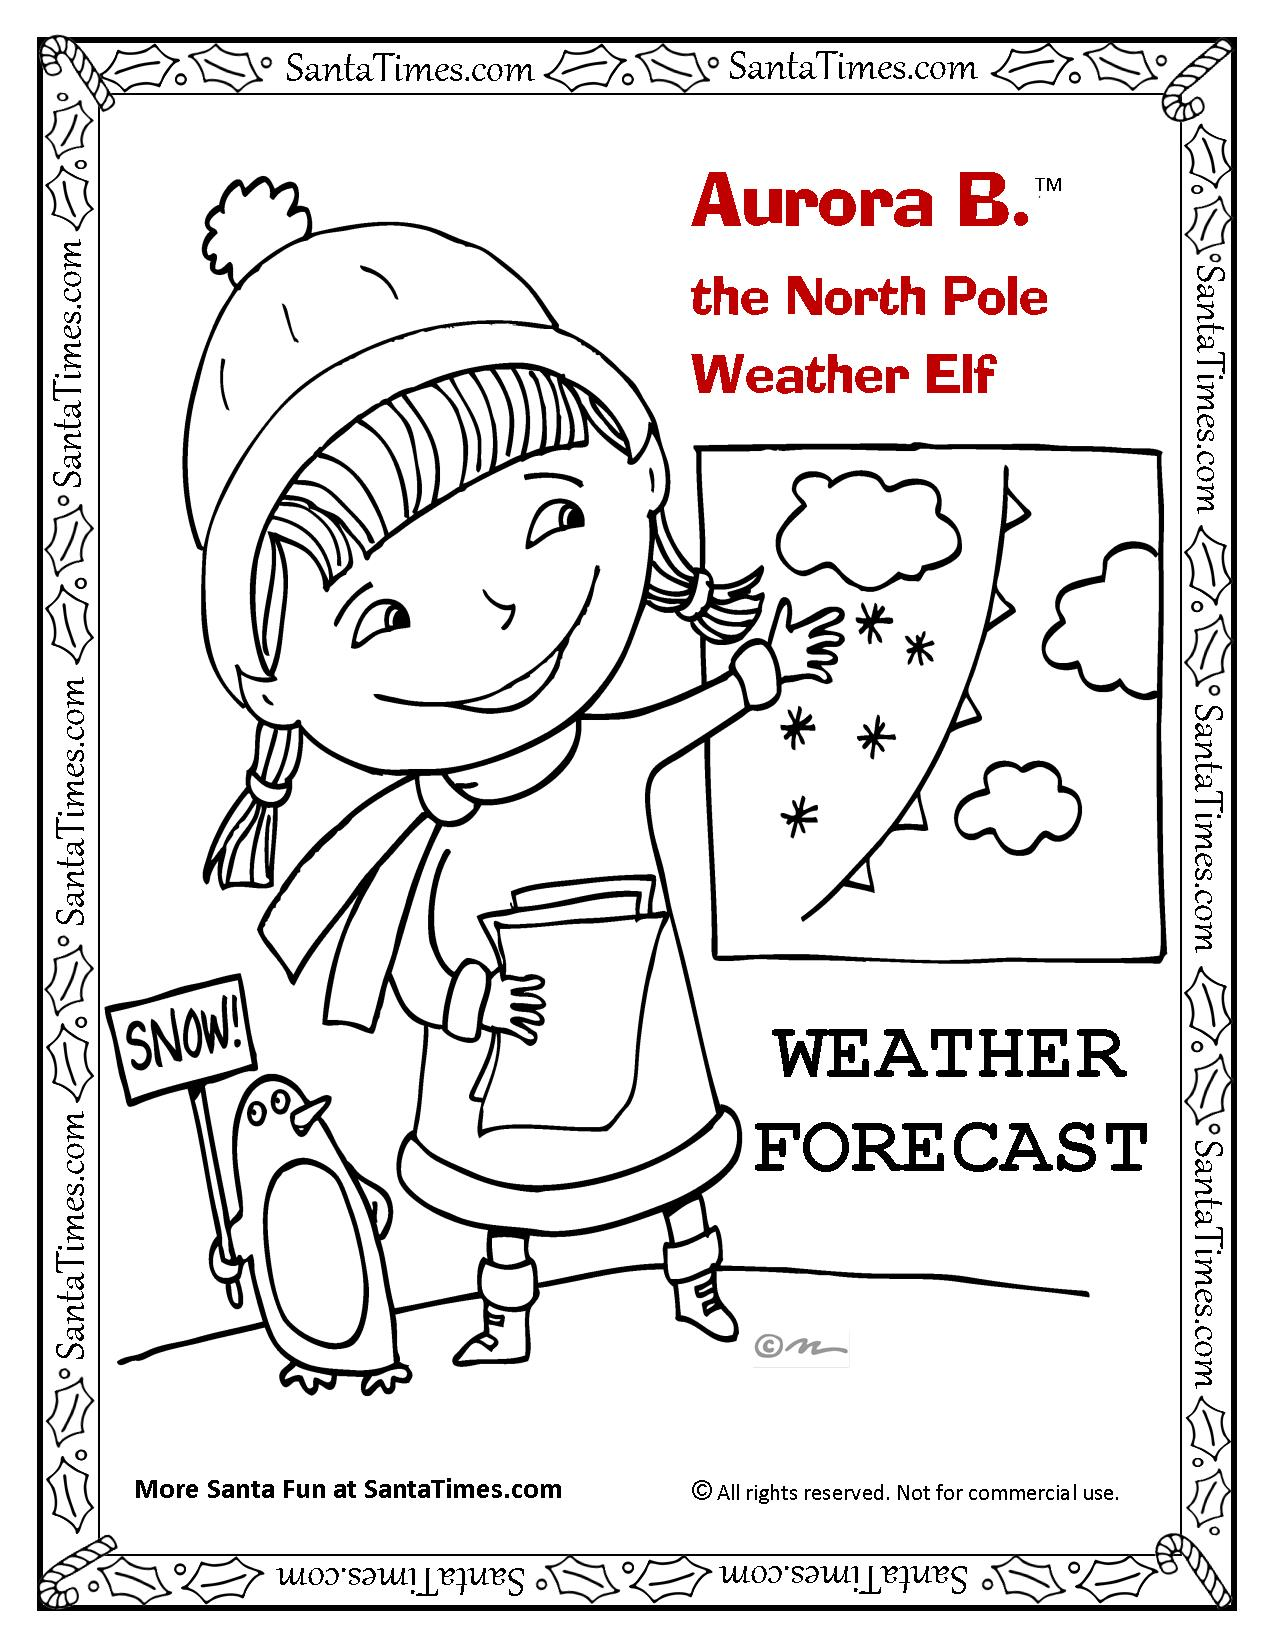 Aurora B. the Weather Elf Christmas weather forecast